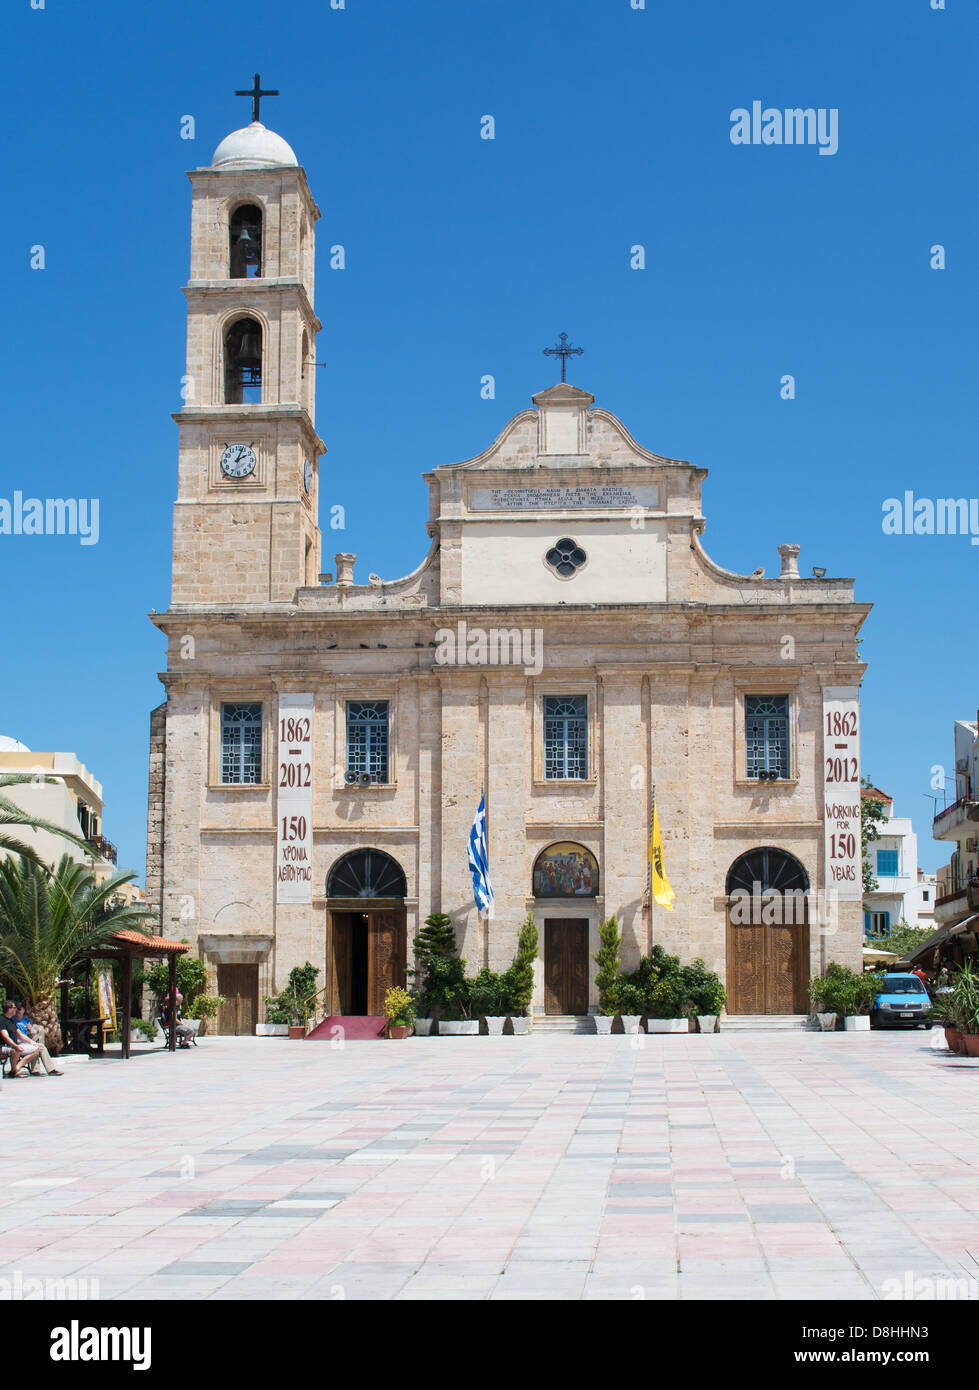 Chania cathedral, Crete, Greece. Stock Photo